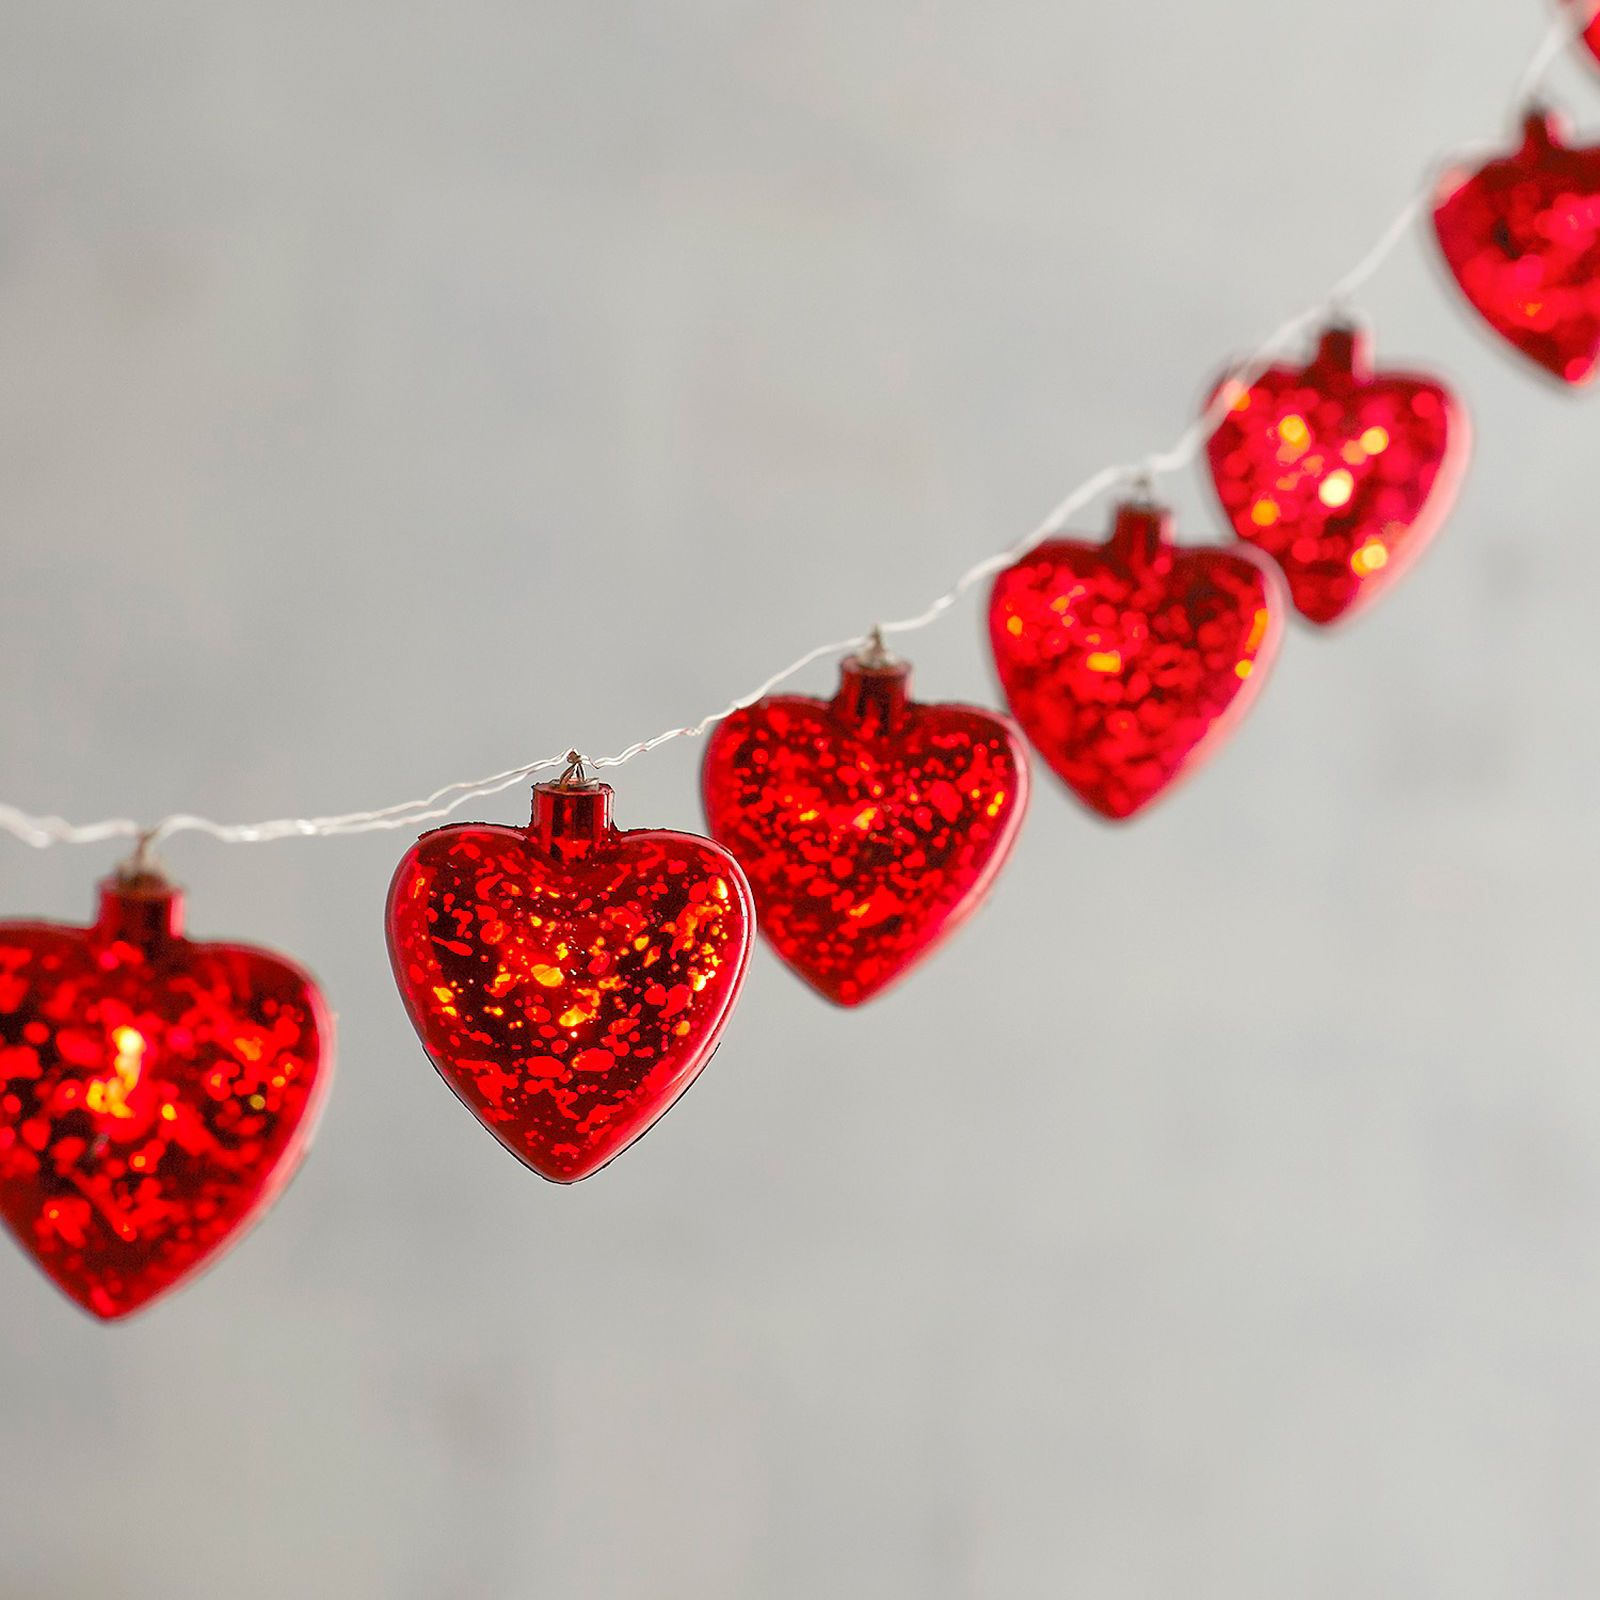 Pier 1 Imports Valentine's Day Red Heart 10' LED Glimmer Strings